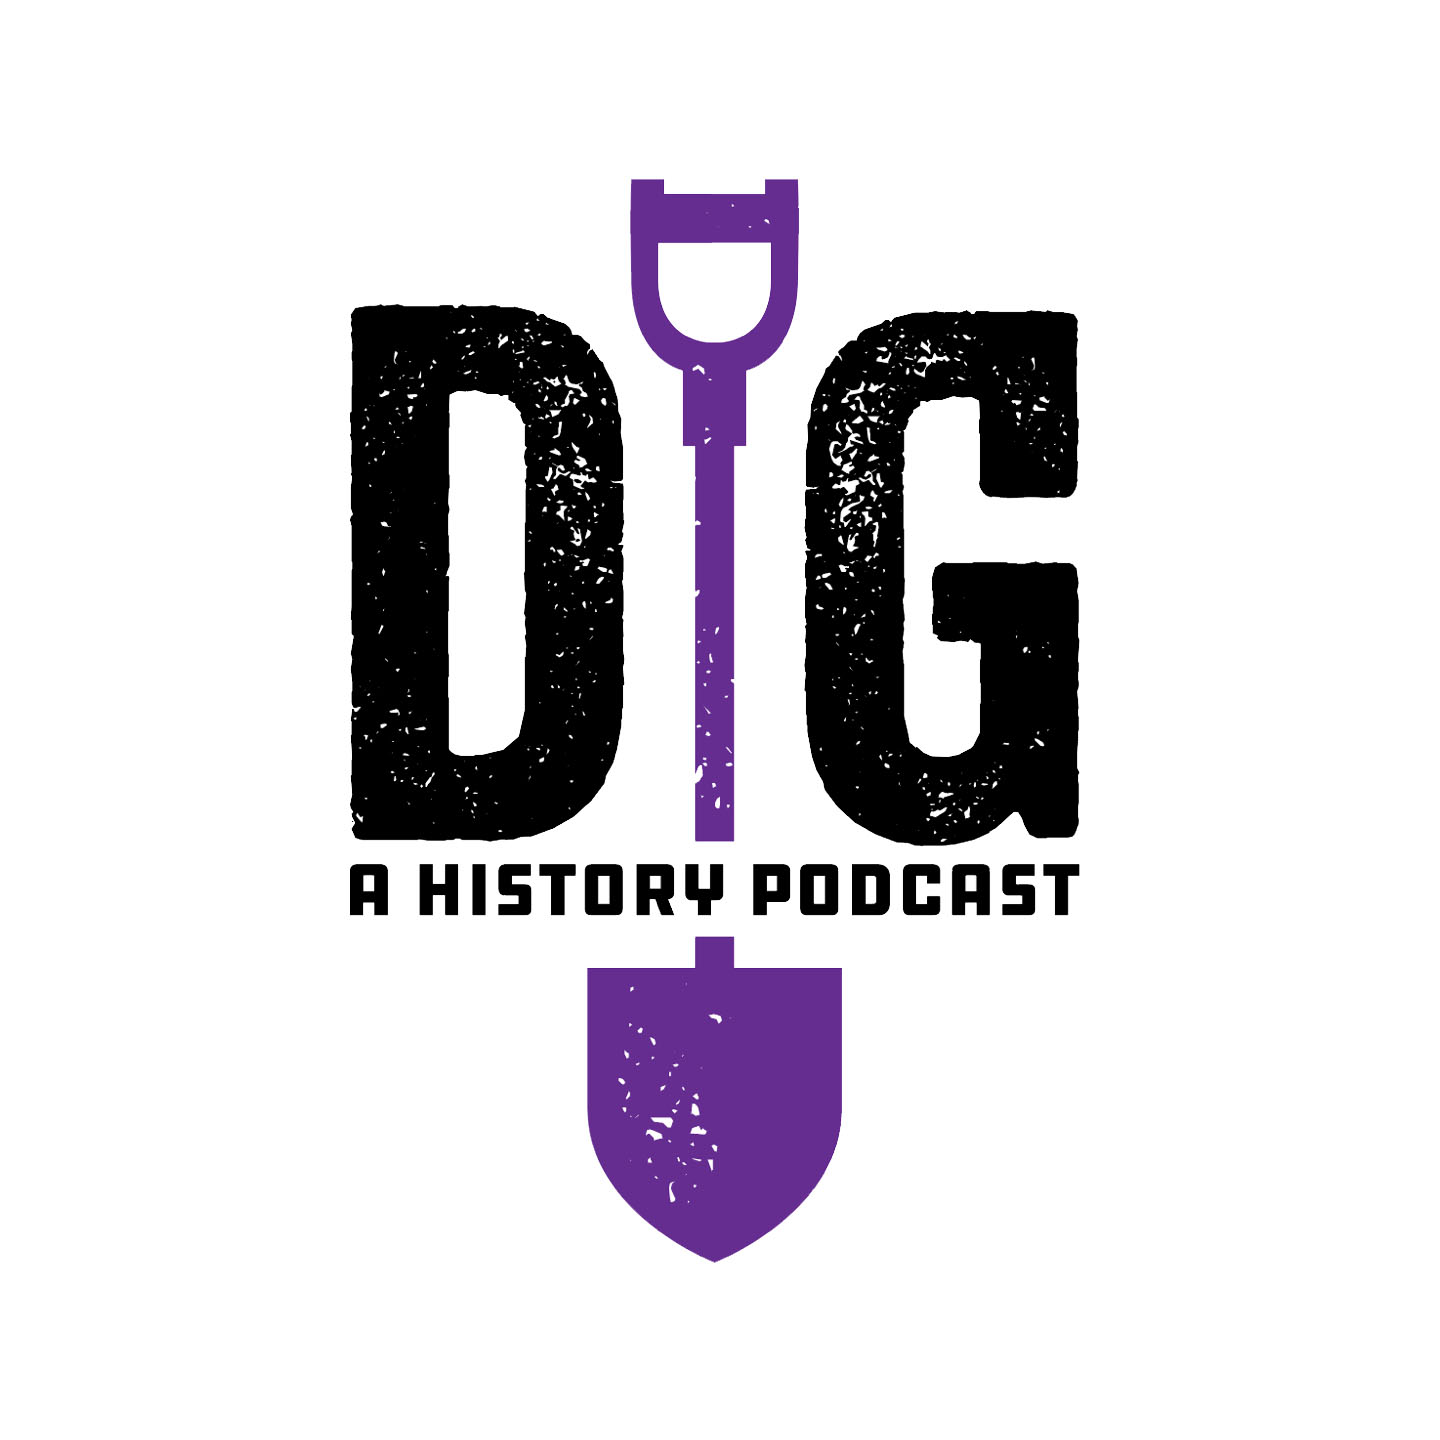 Dig: A History Podcast - First launched in 2017, Dig is a feminist history podcast committed to bringing history scholarship to the public, producing episodes with equal parts wit and rigor.